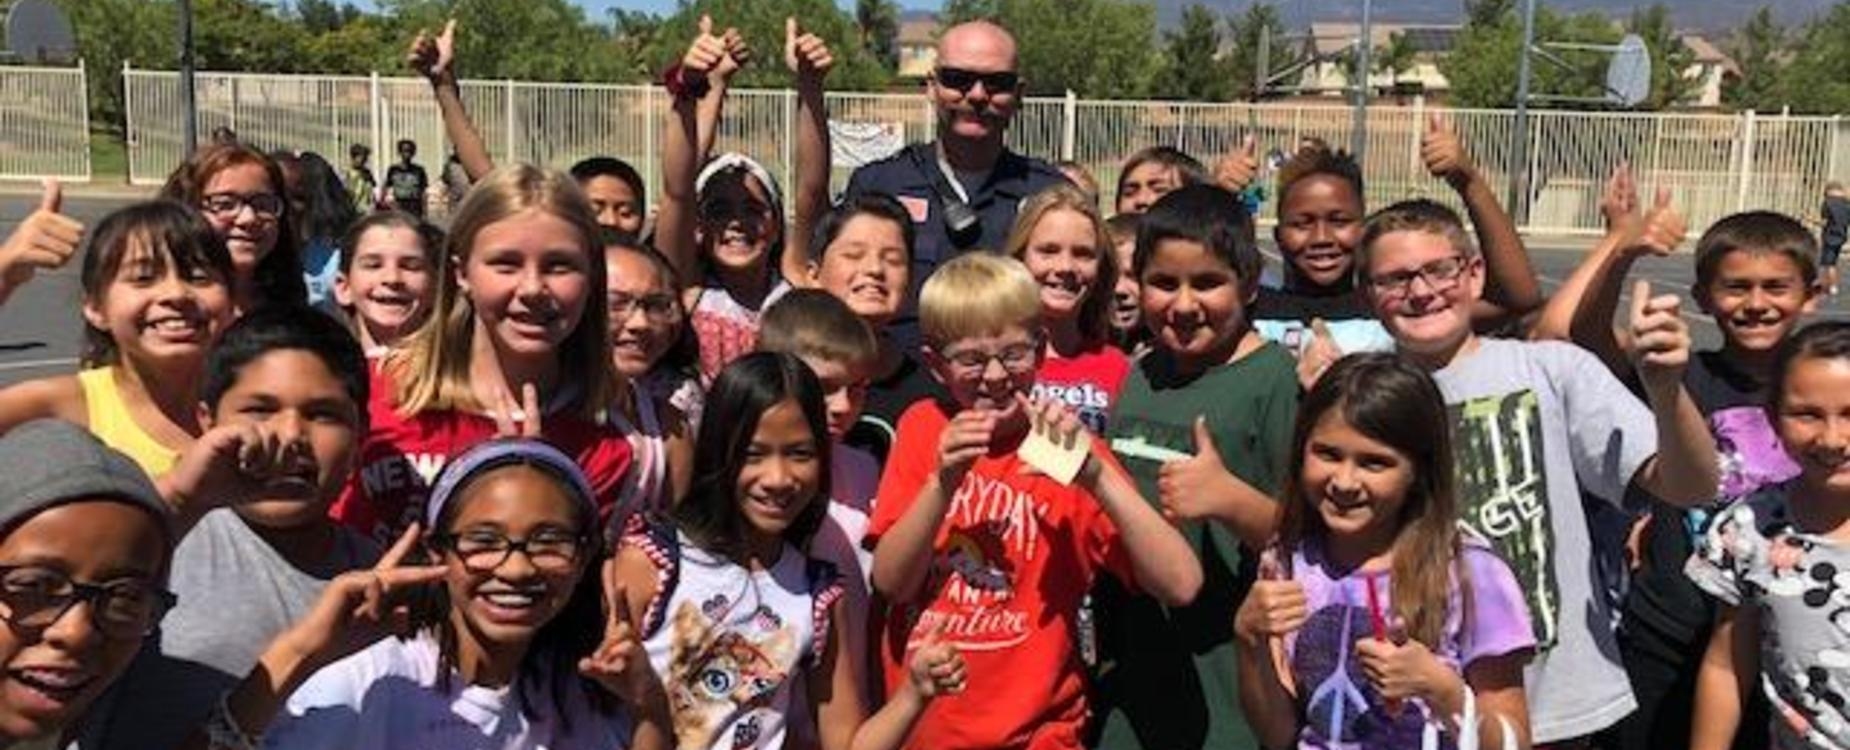 Students taking a picture with Officer Bronstroup